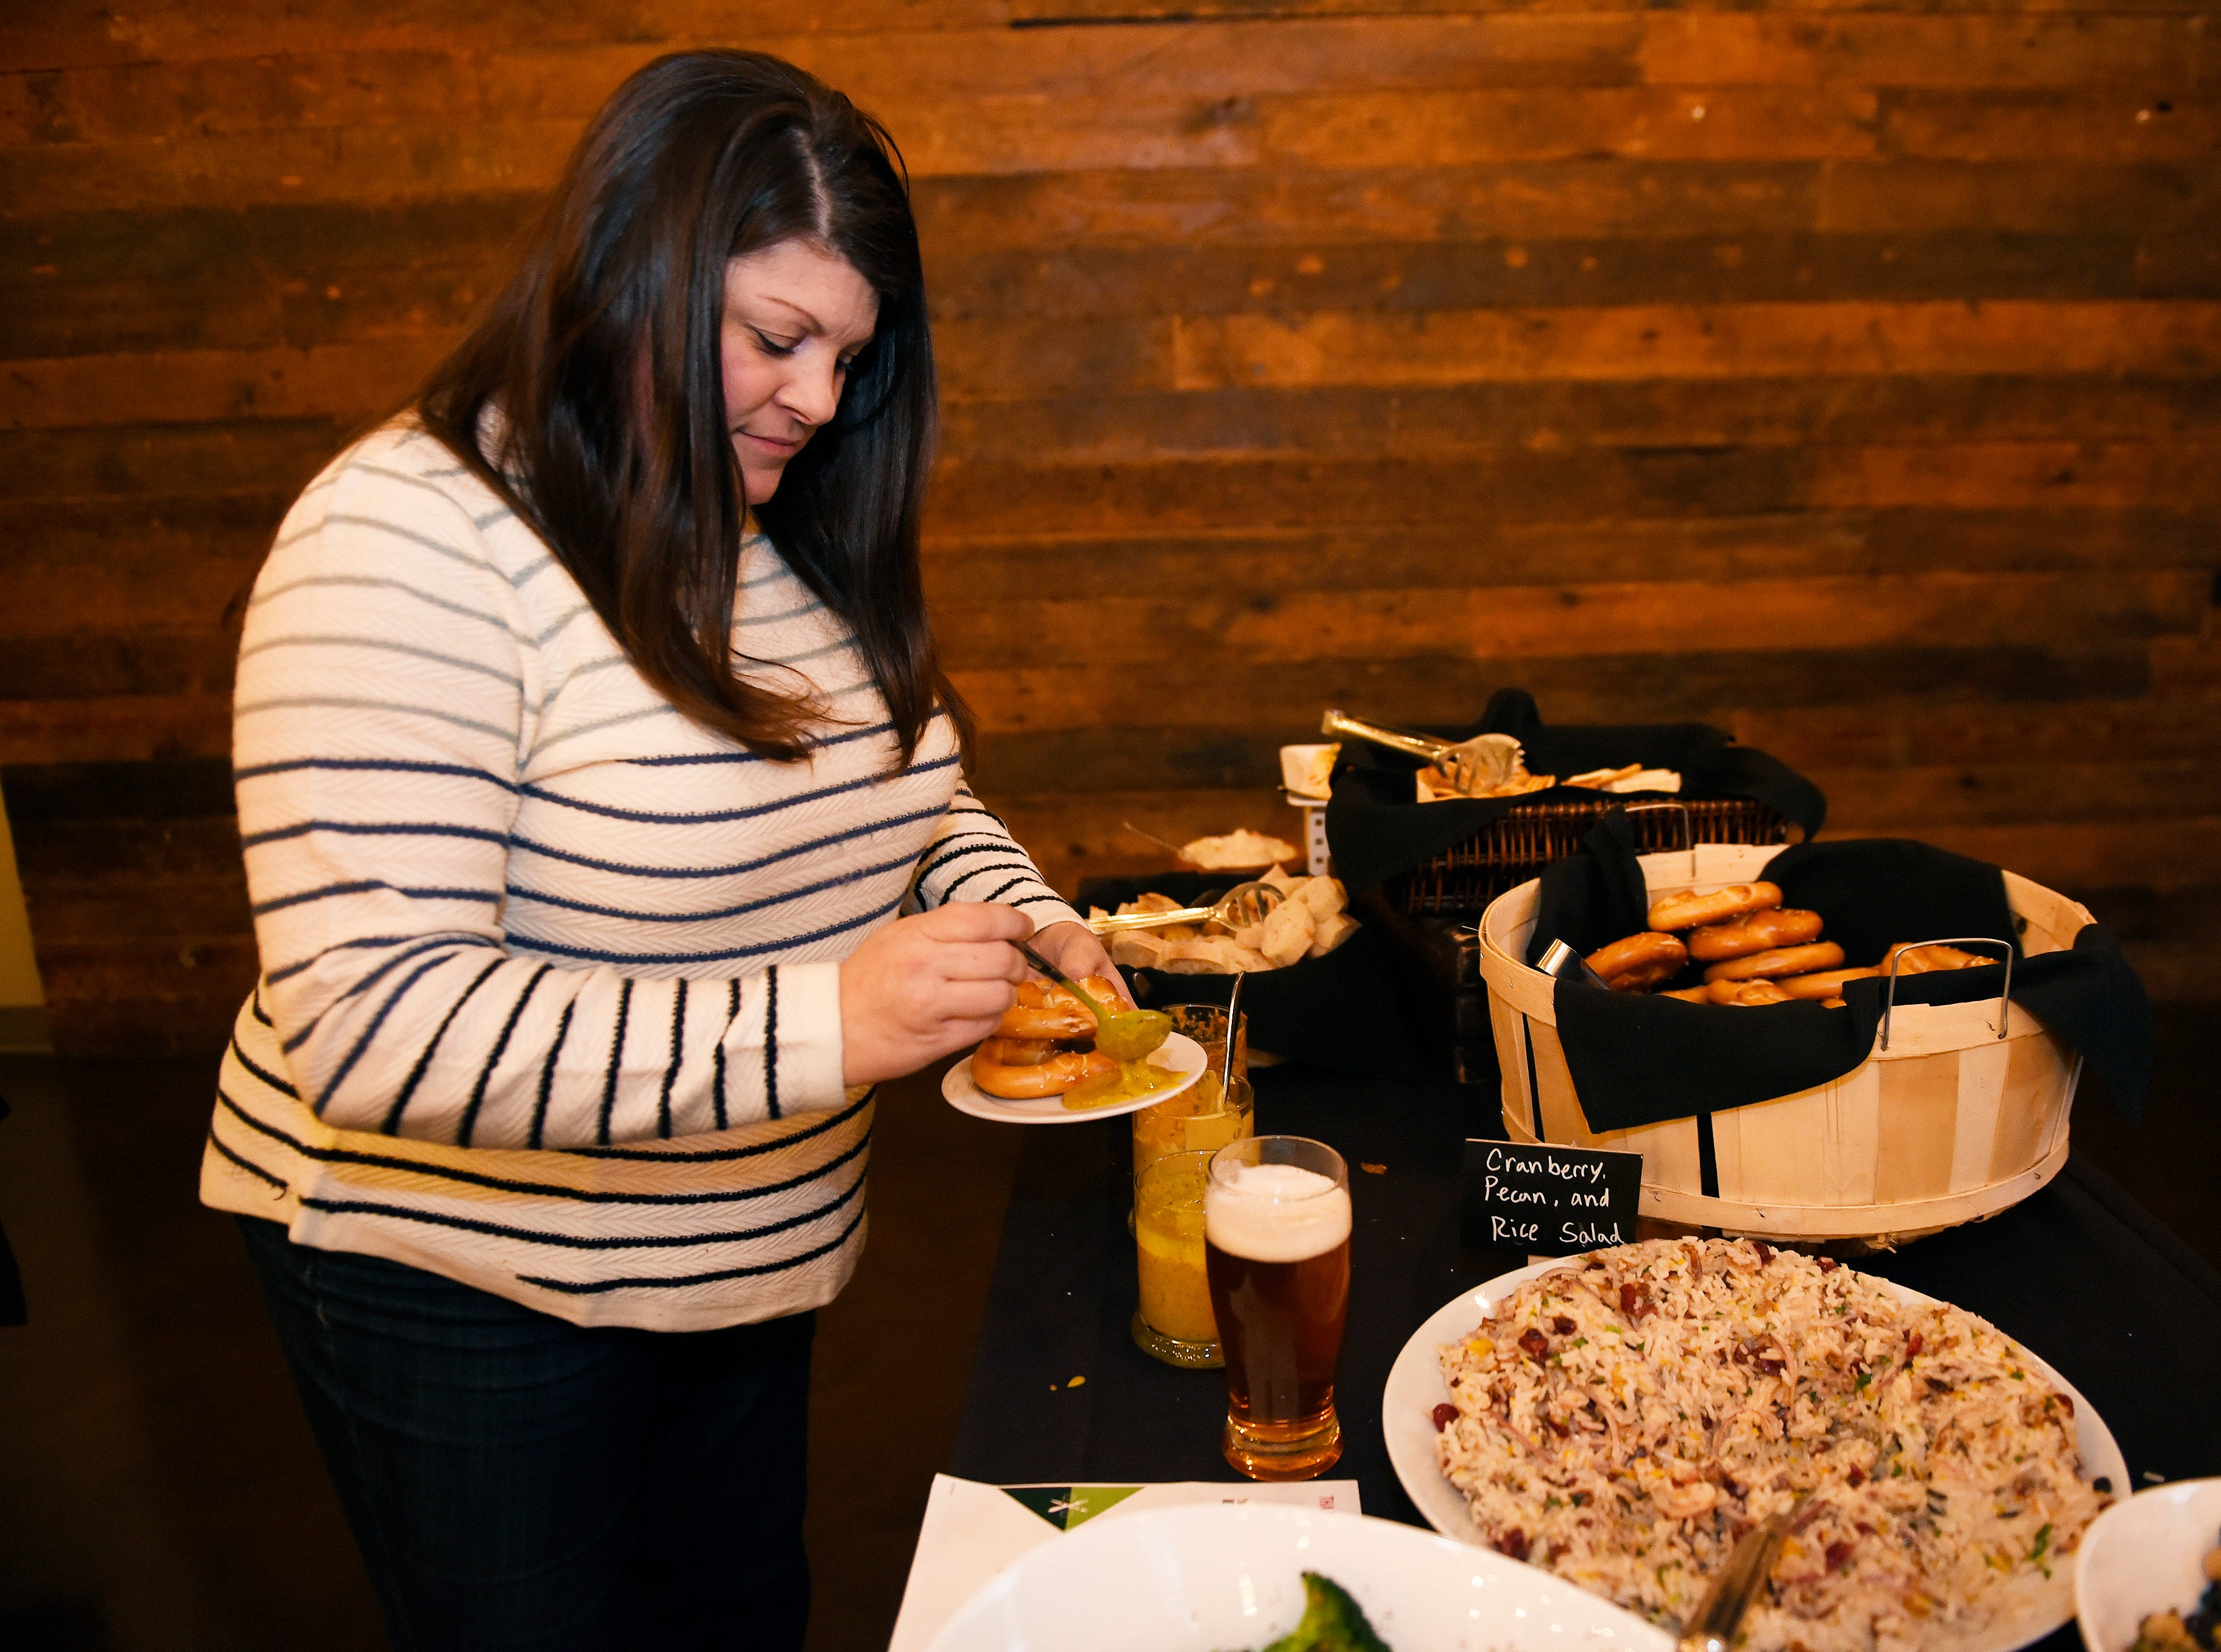 Christine King, 44, of Fenton, Mi, makes a plate of food before the start of the event.